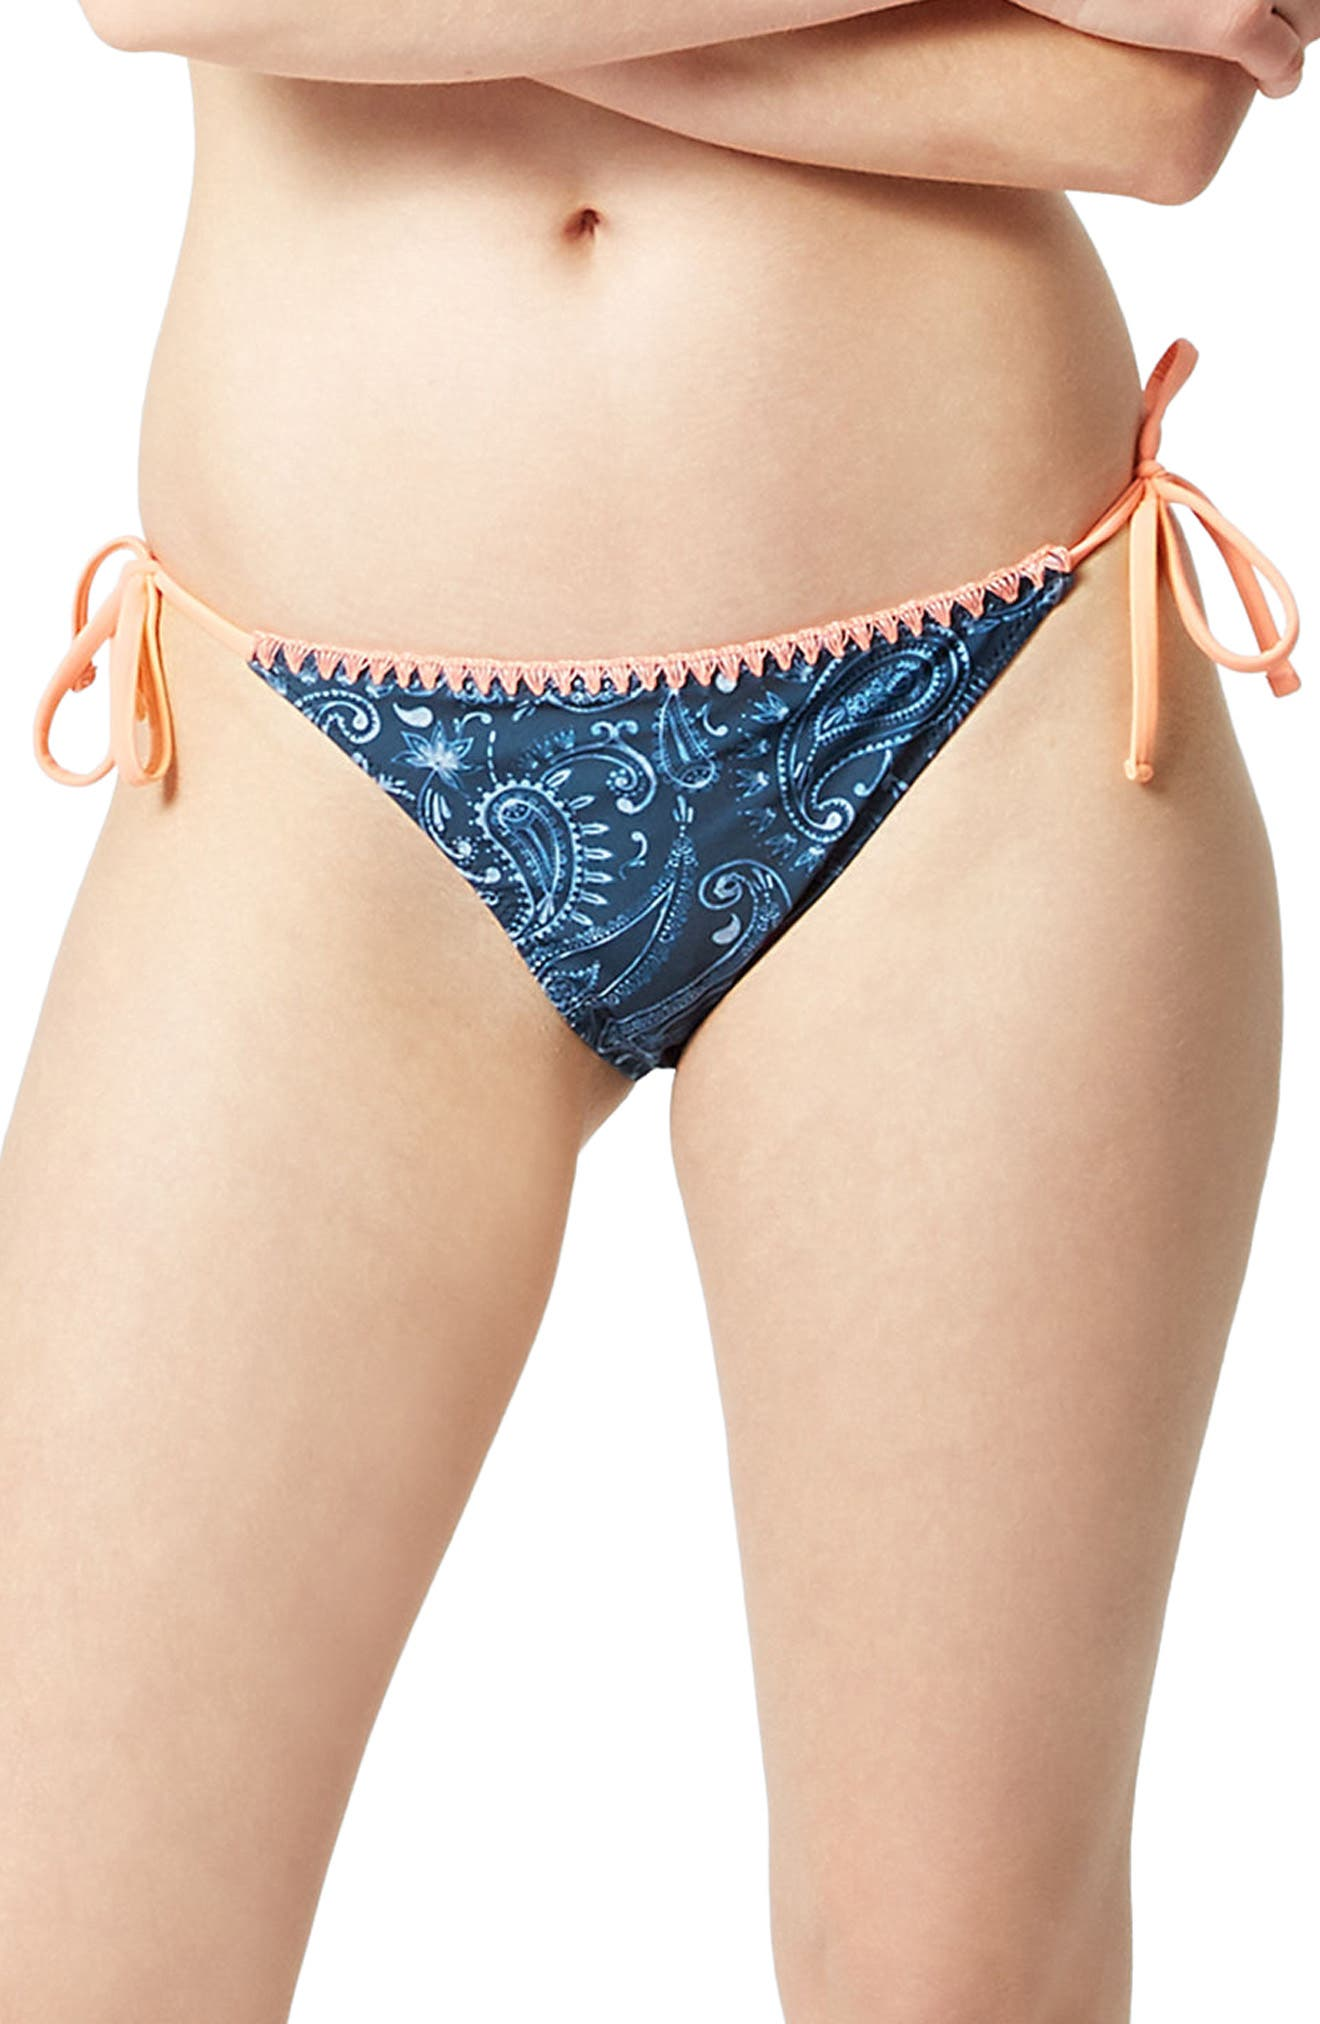 Purity Reversible Bikini Bottoms,                         Main,                         color, Printed/ Oxblood